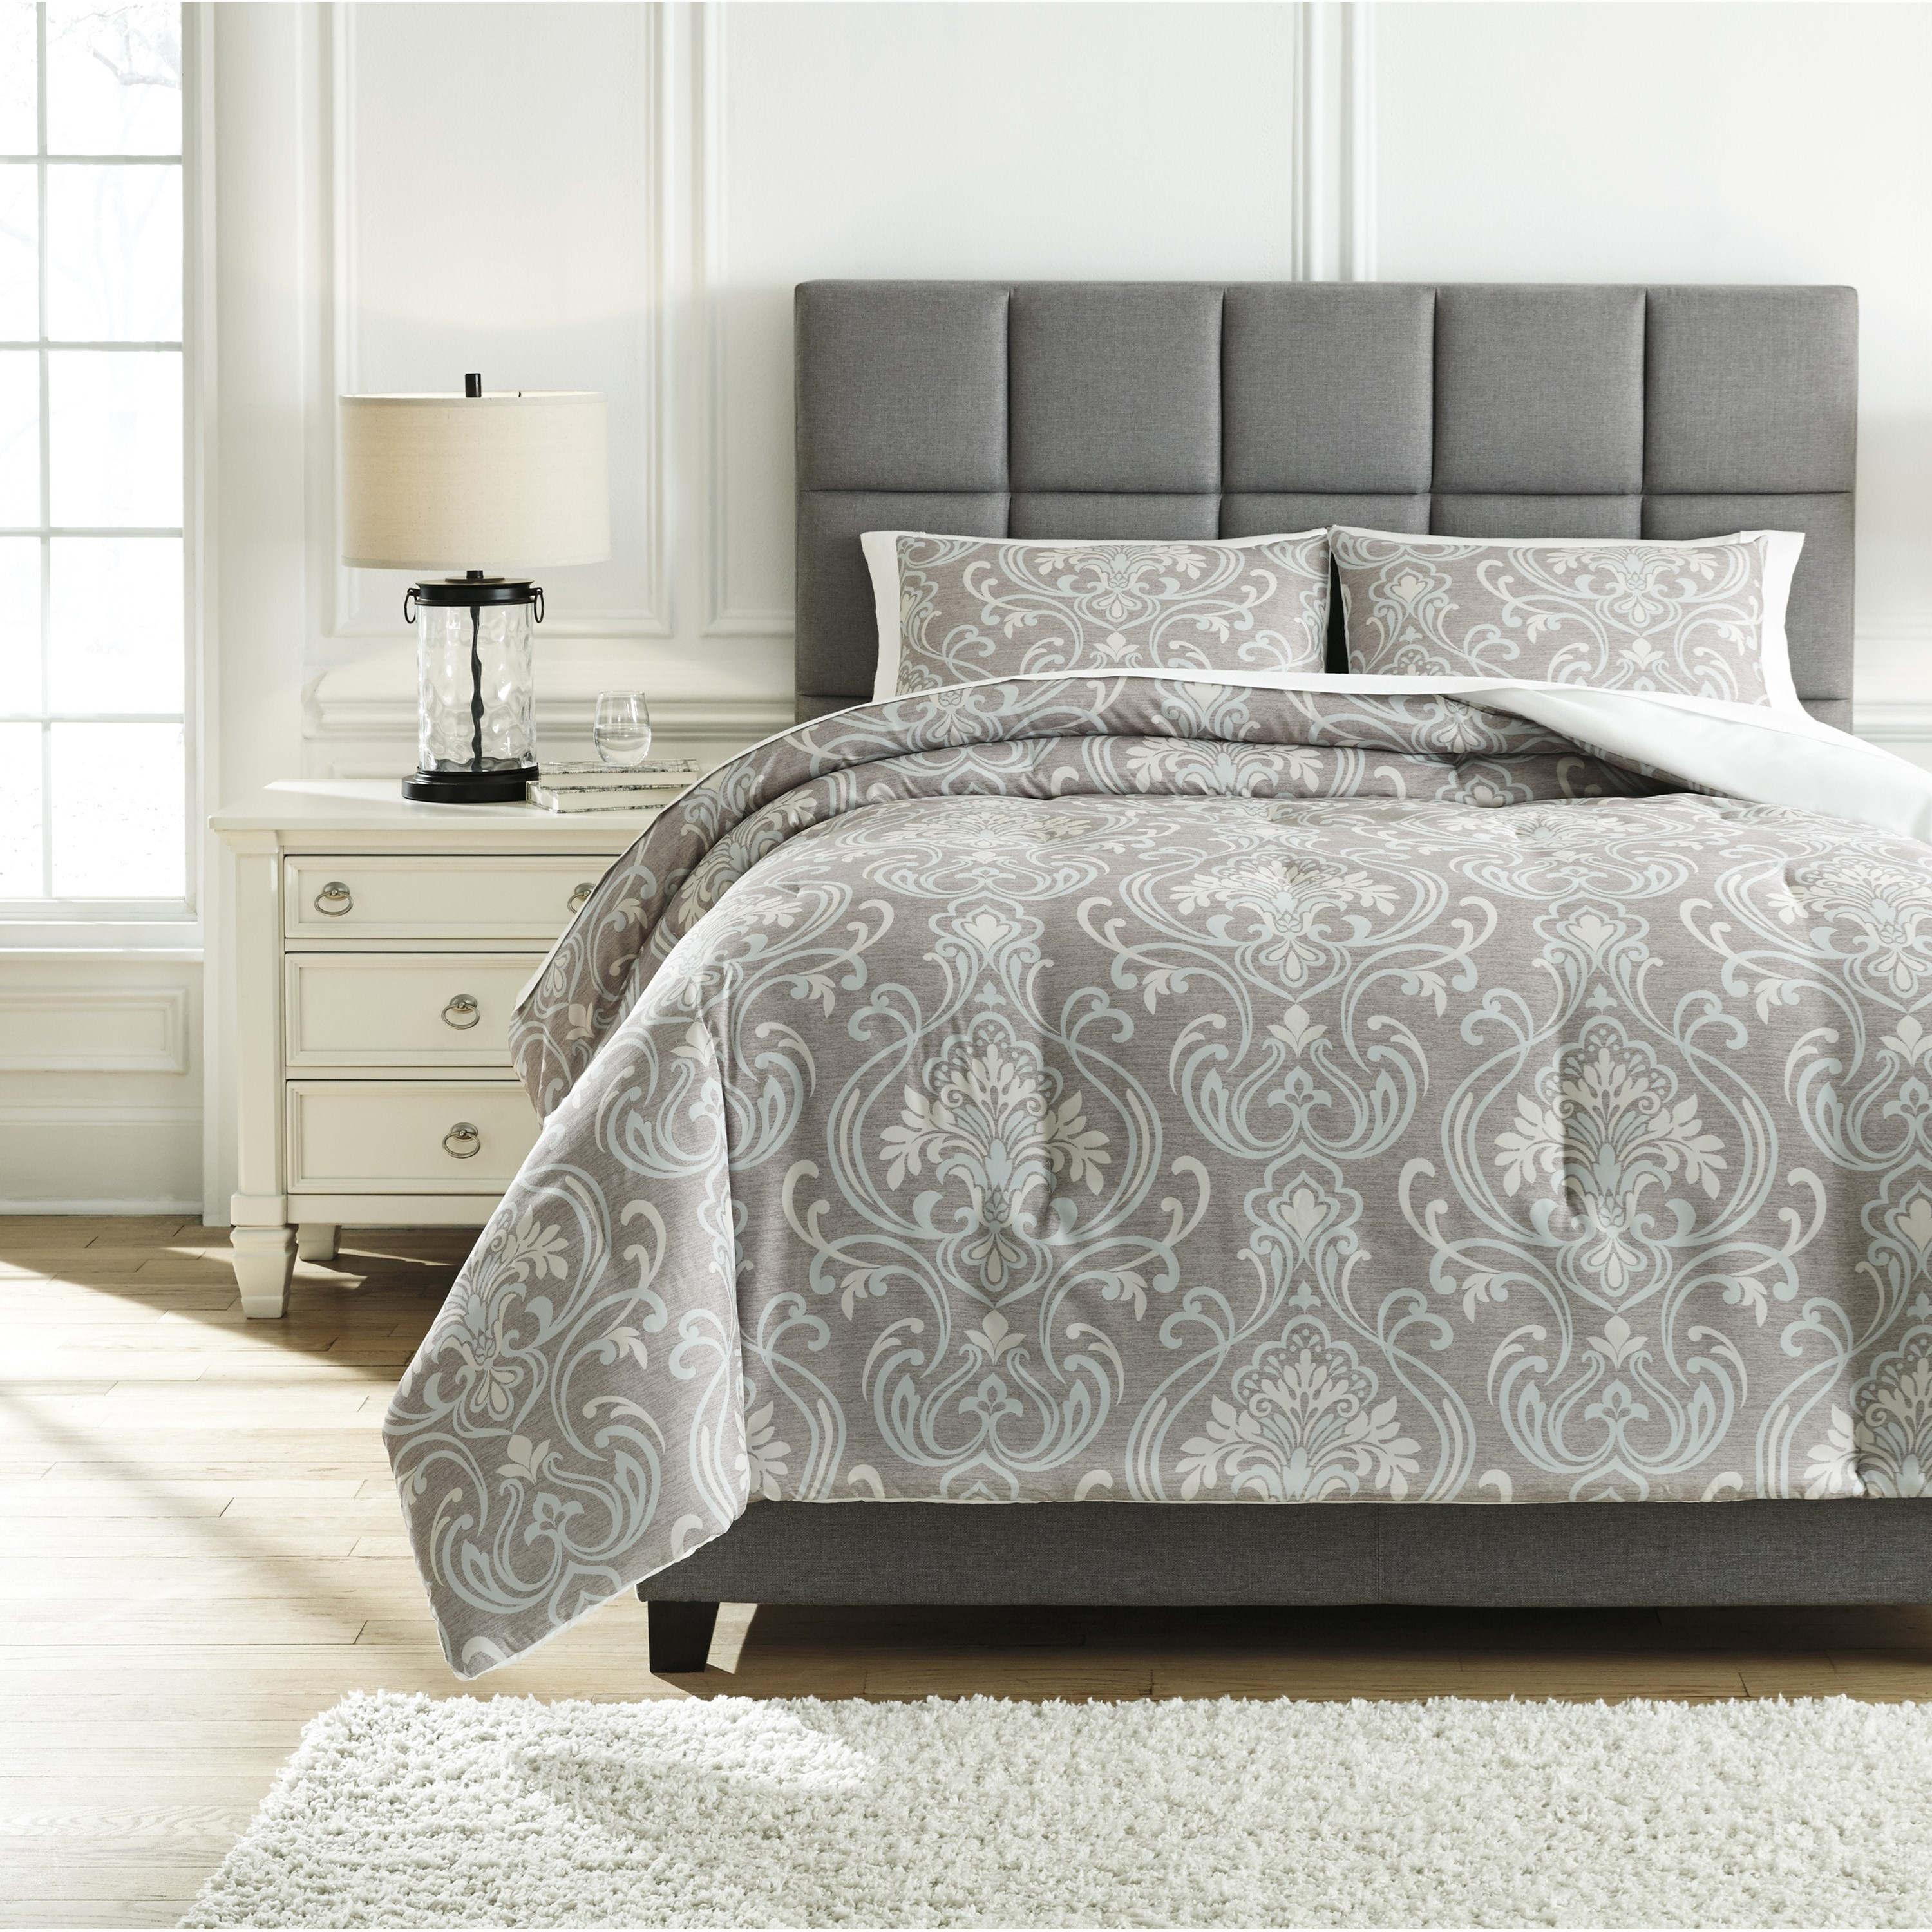 Bedding Sets Queen Noel Gray/Tan Comforter Set by Signature Design by Ashley at Northeast Factory Direct